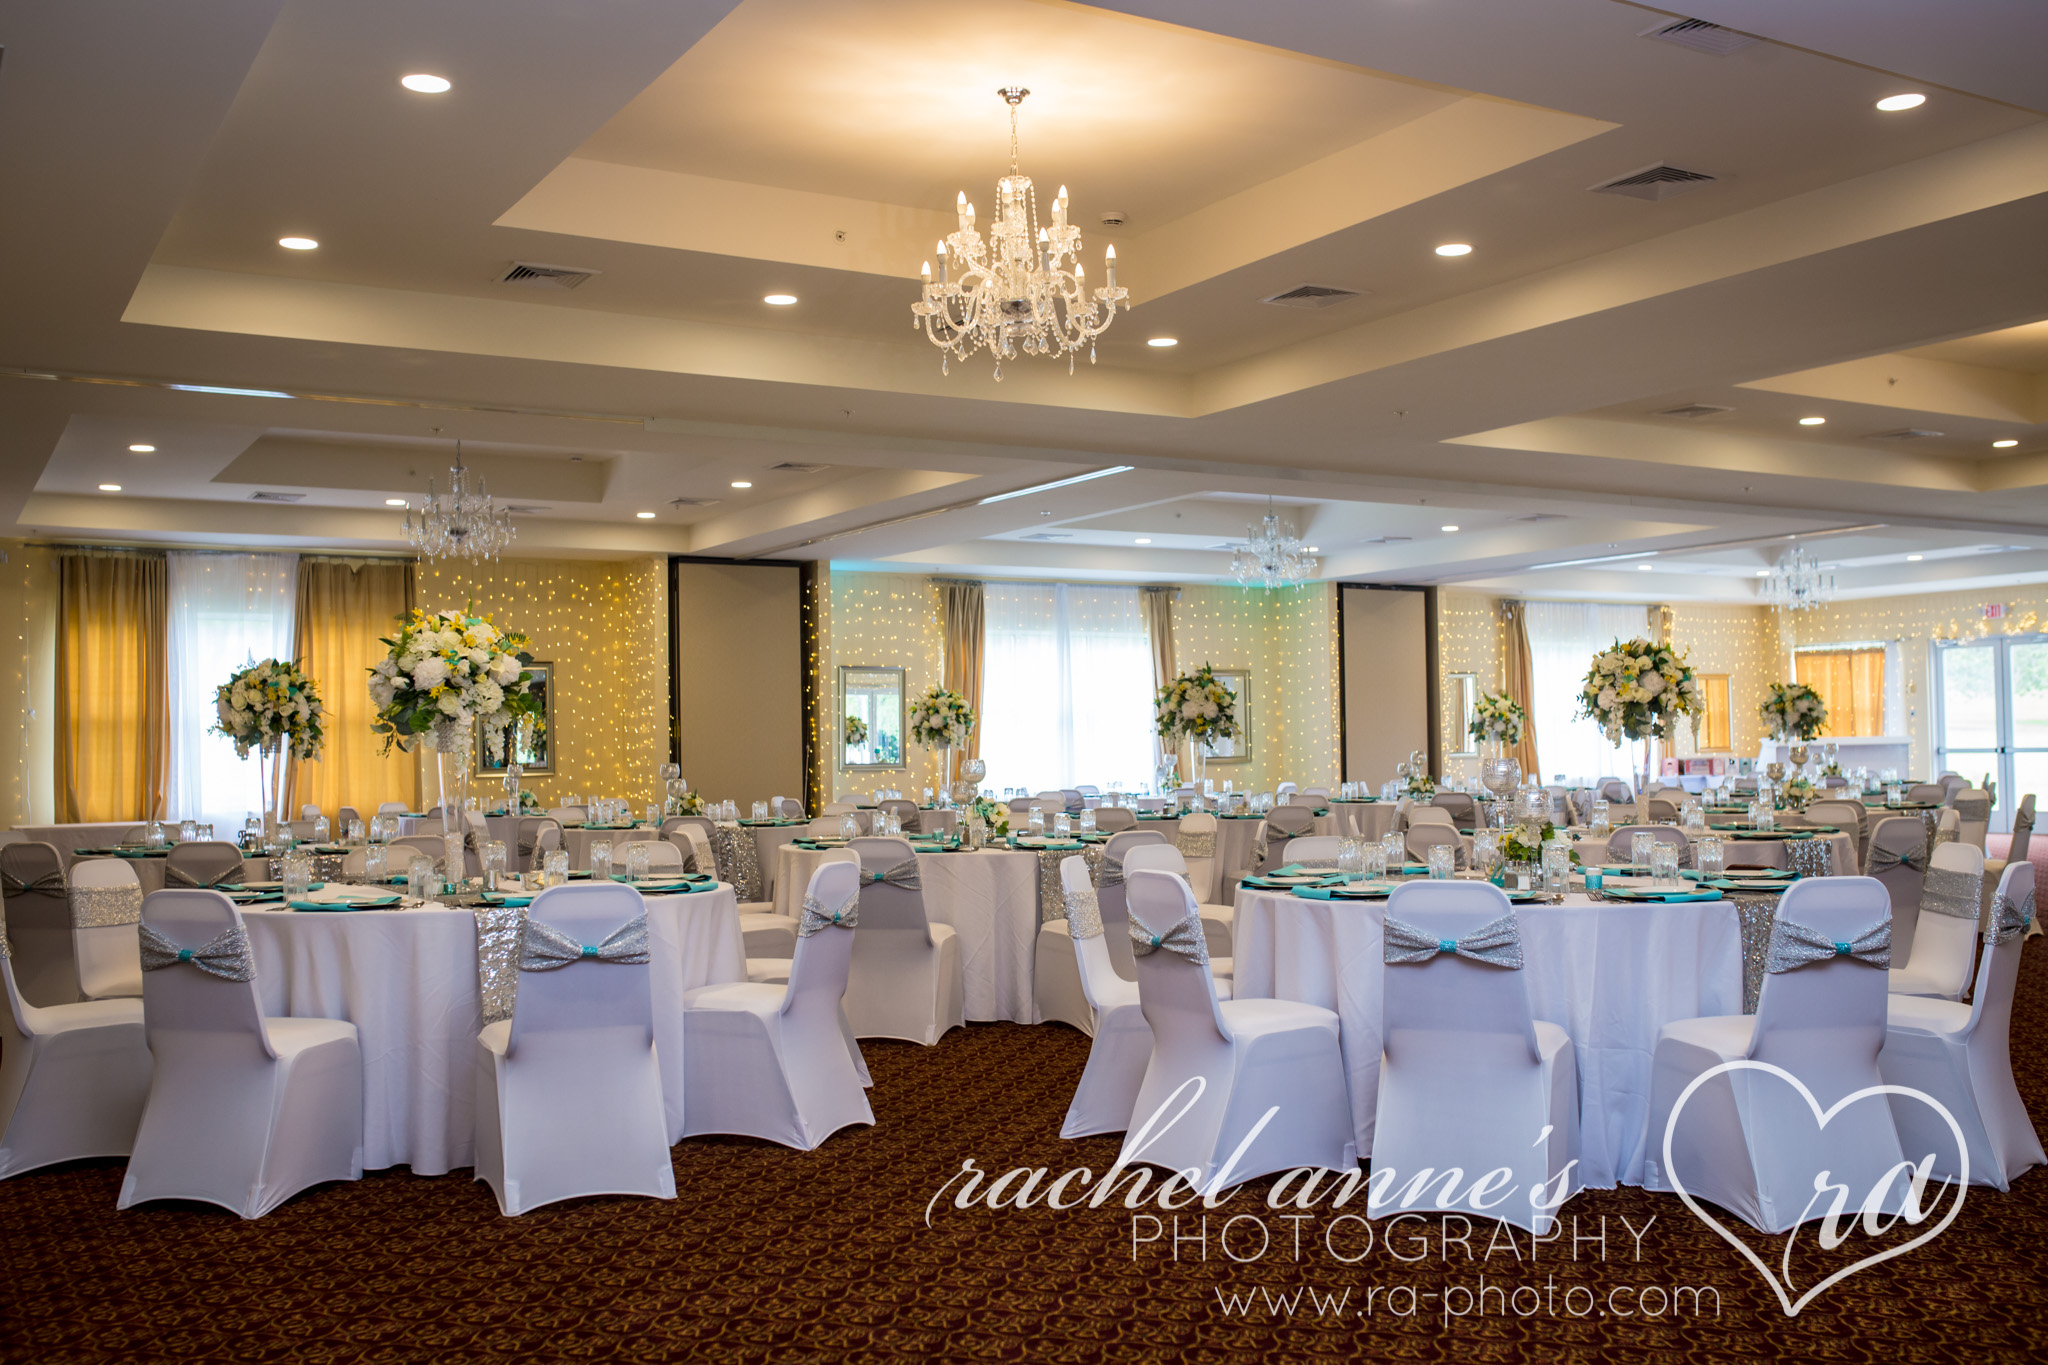 049-BKK-DUBOIS-COUNTRY-CLUB-PA-WEDDINGS.jpg